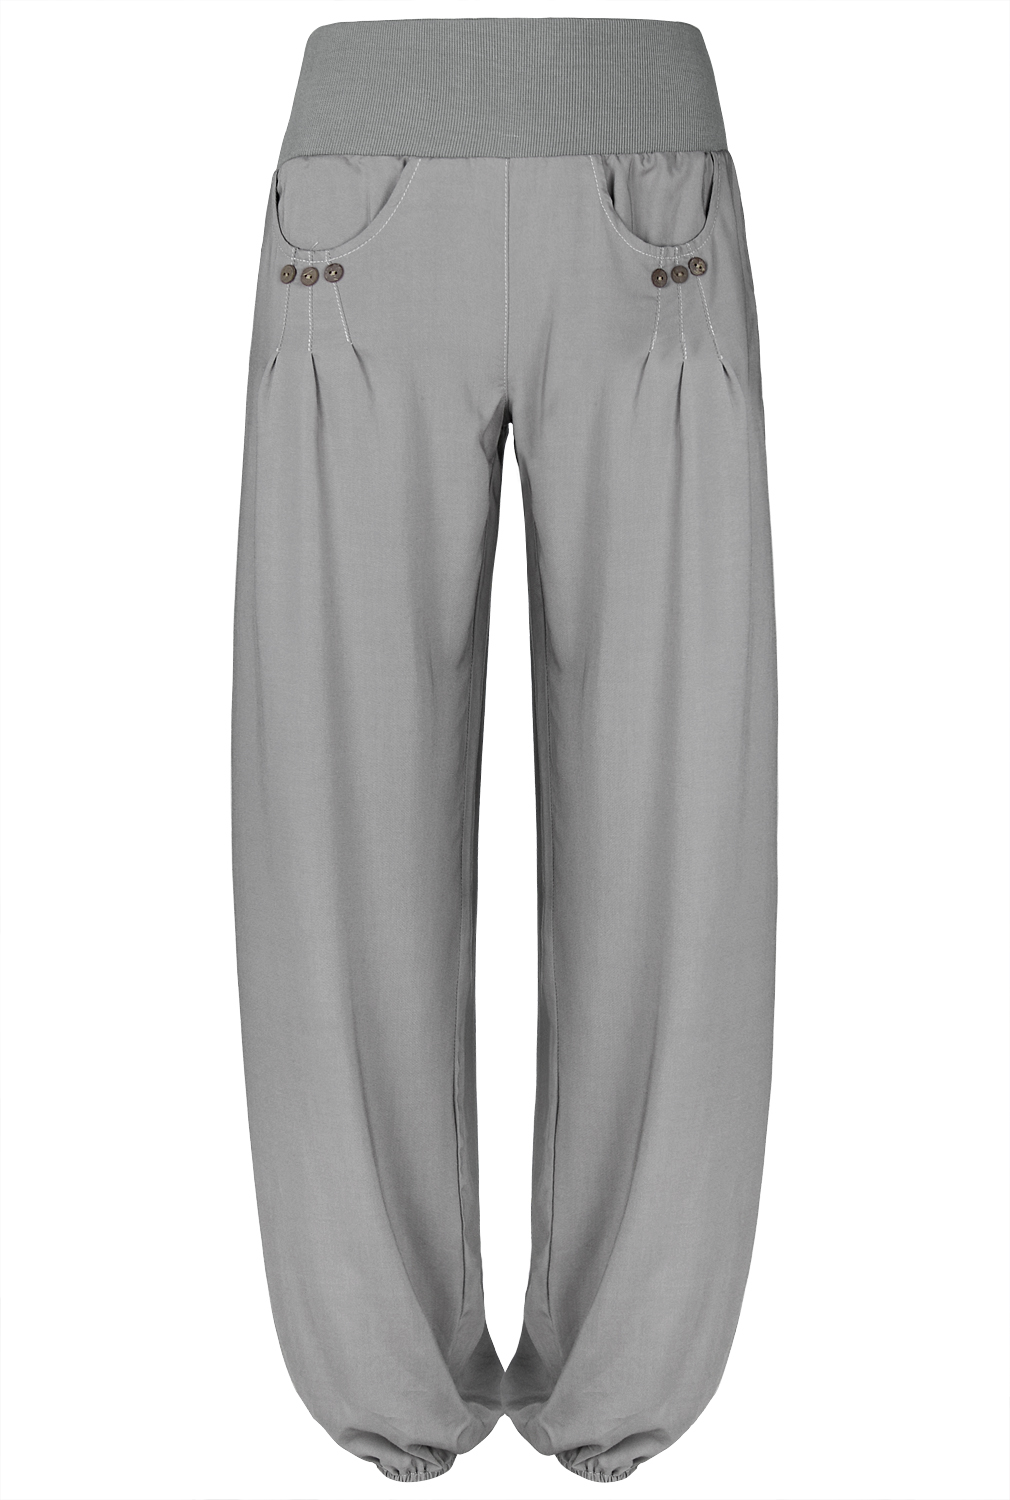 Unique Womens Cargo Pants With Pockets - Pant Olo